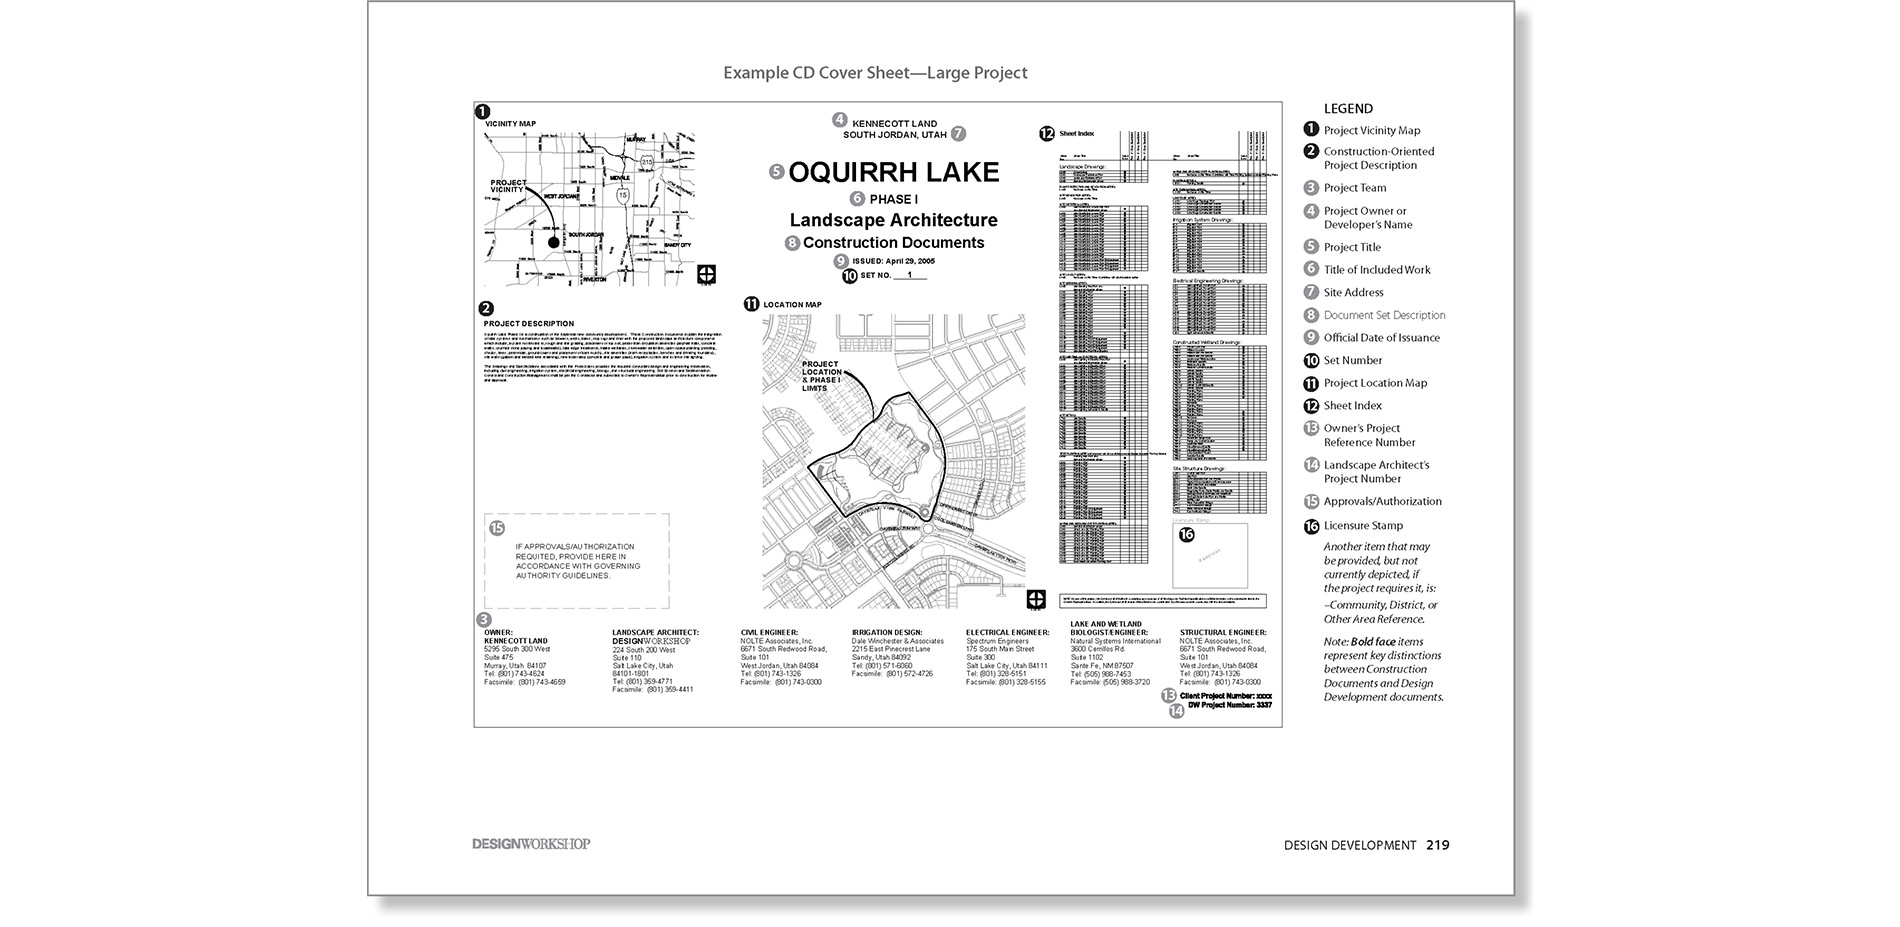 Architecture Design Sheet Layout Images